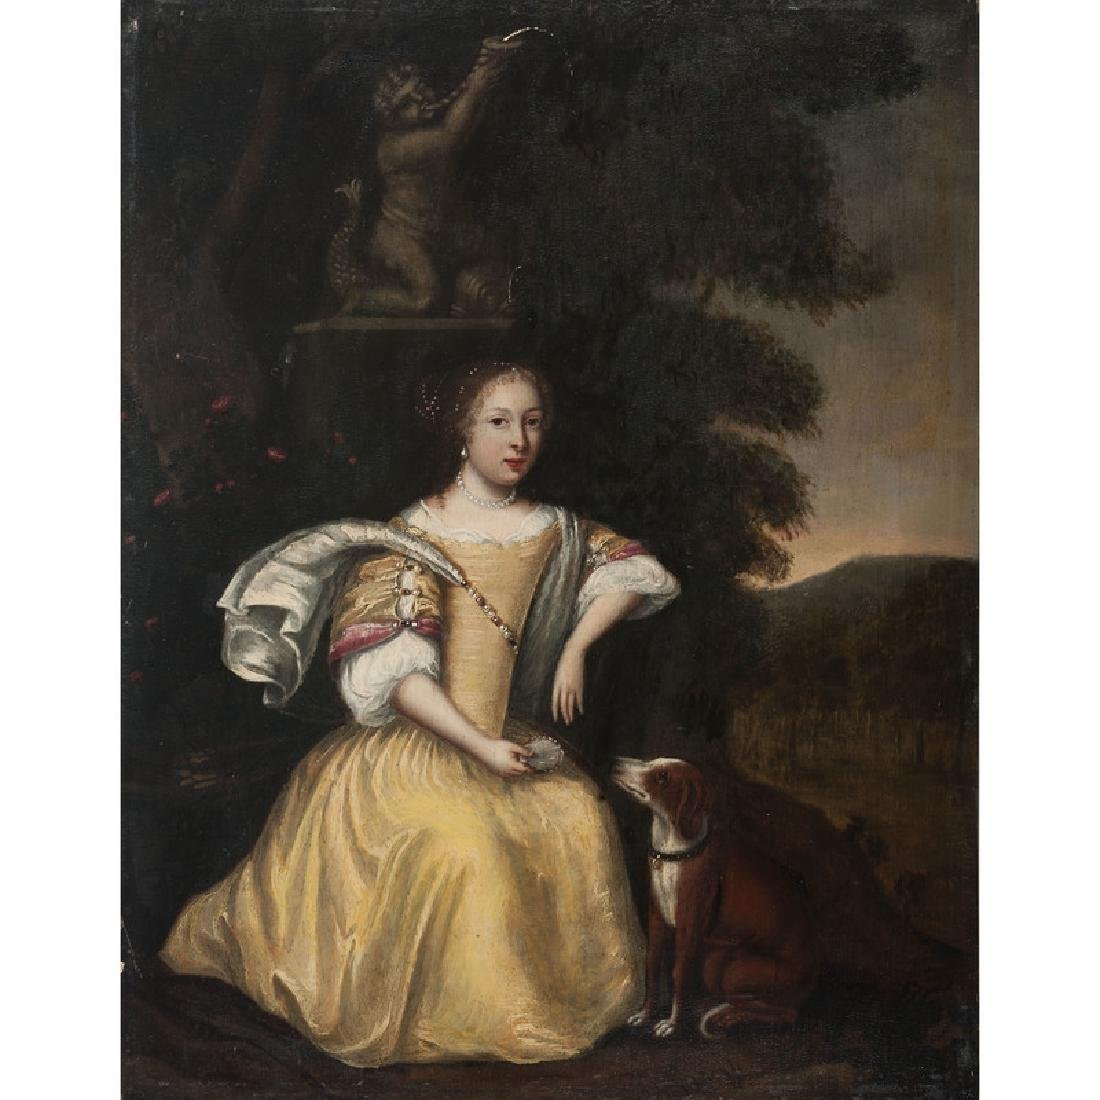 English Portrait of a Woman with Dog